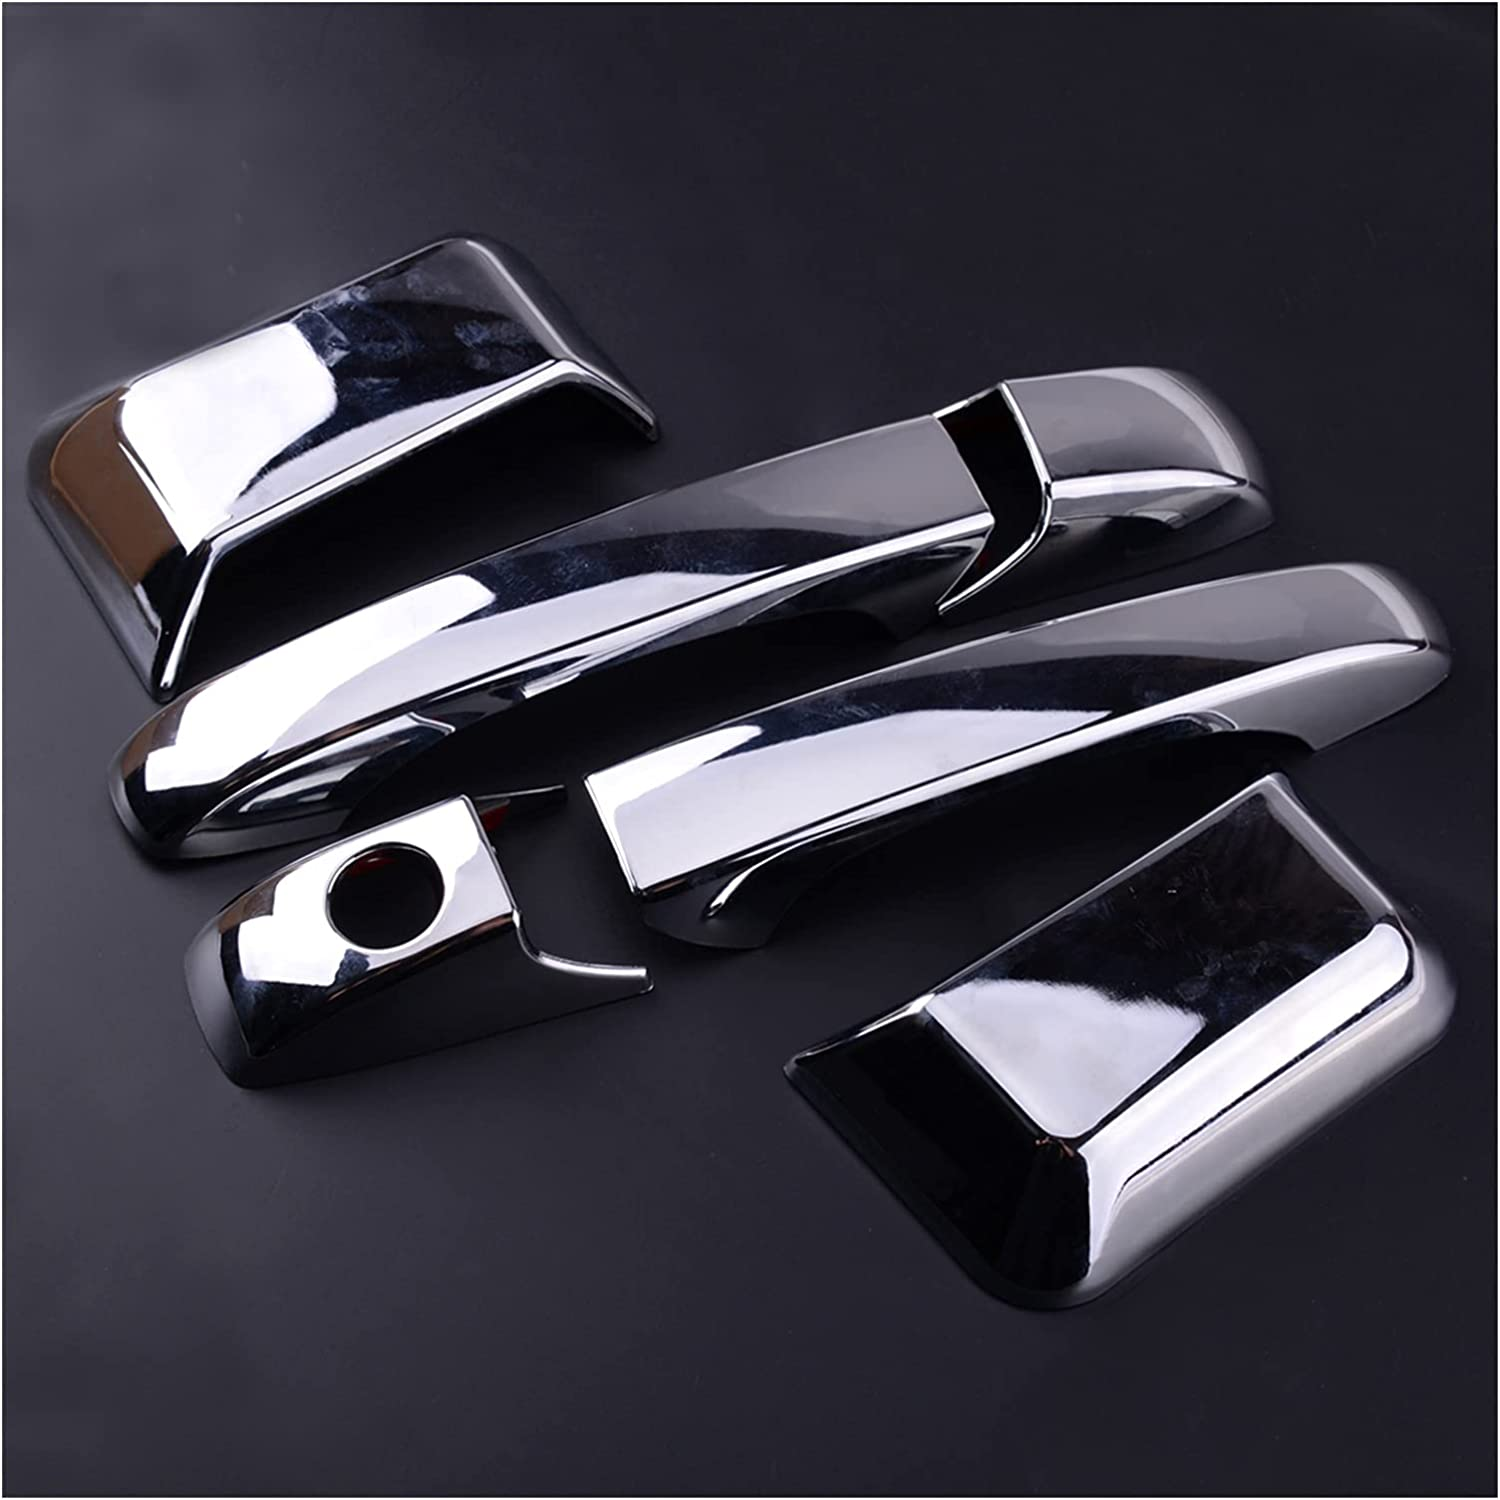 ZSQ 6pcs ABS Chrome Door Denver Mall Handle Fit f Bombing new work Cover Molding Overlay Trim